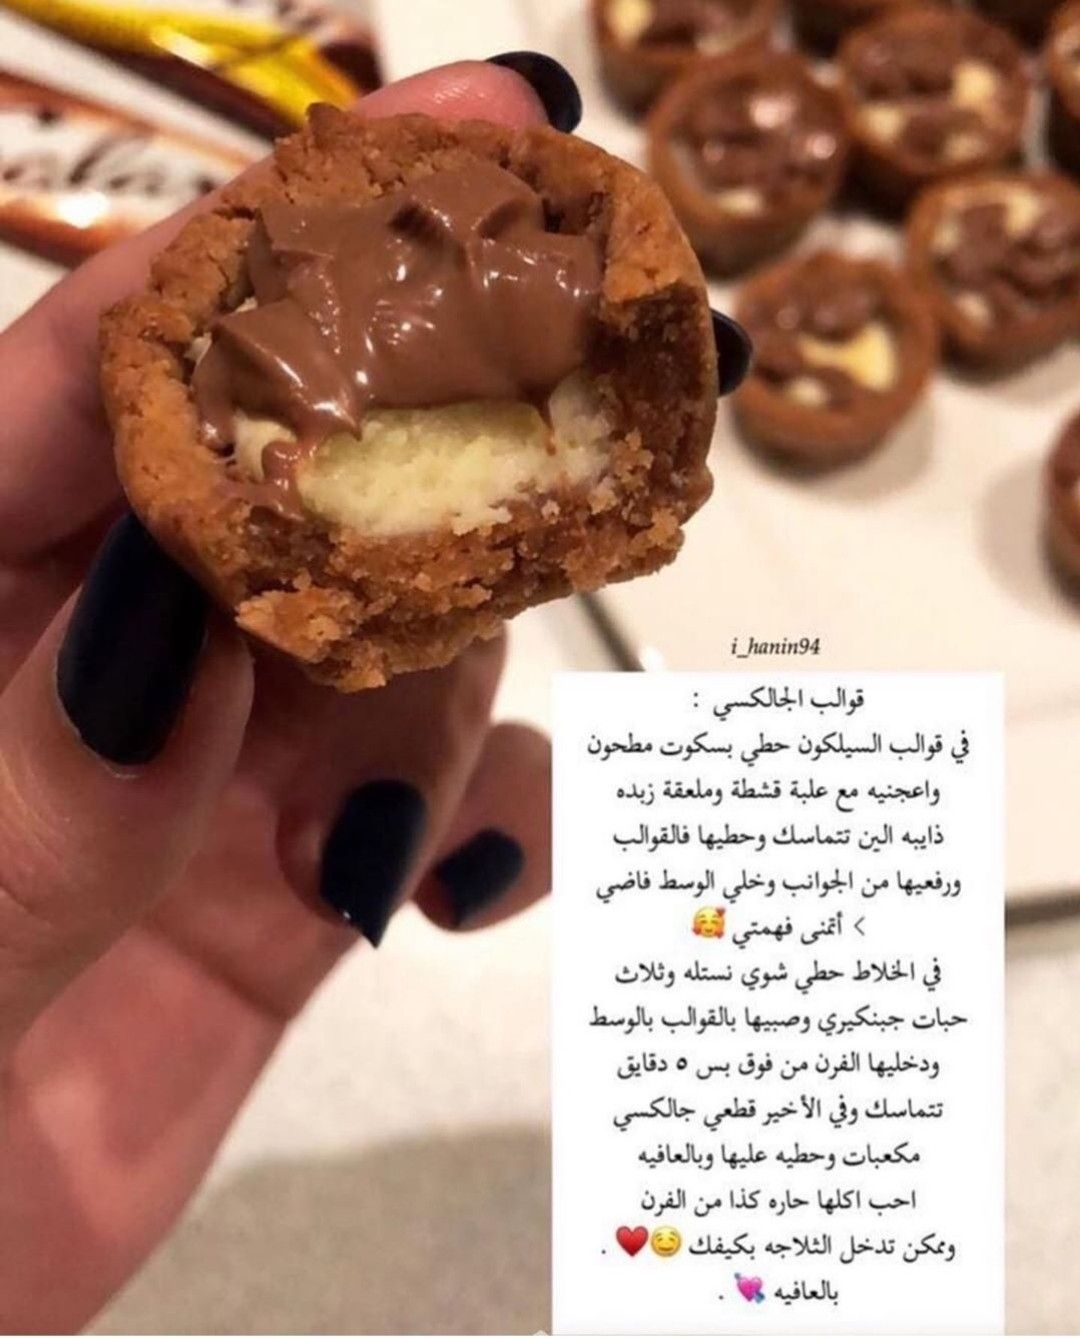 Pin By حمودي العمودي On Food Buffet Food Cooking Recipes Desserts Yummy Food Dessert